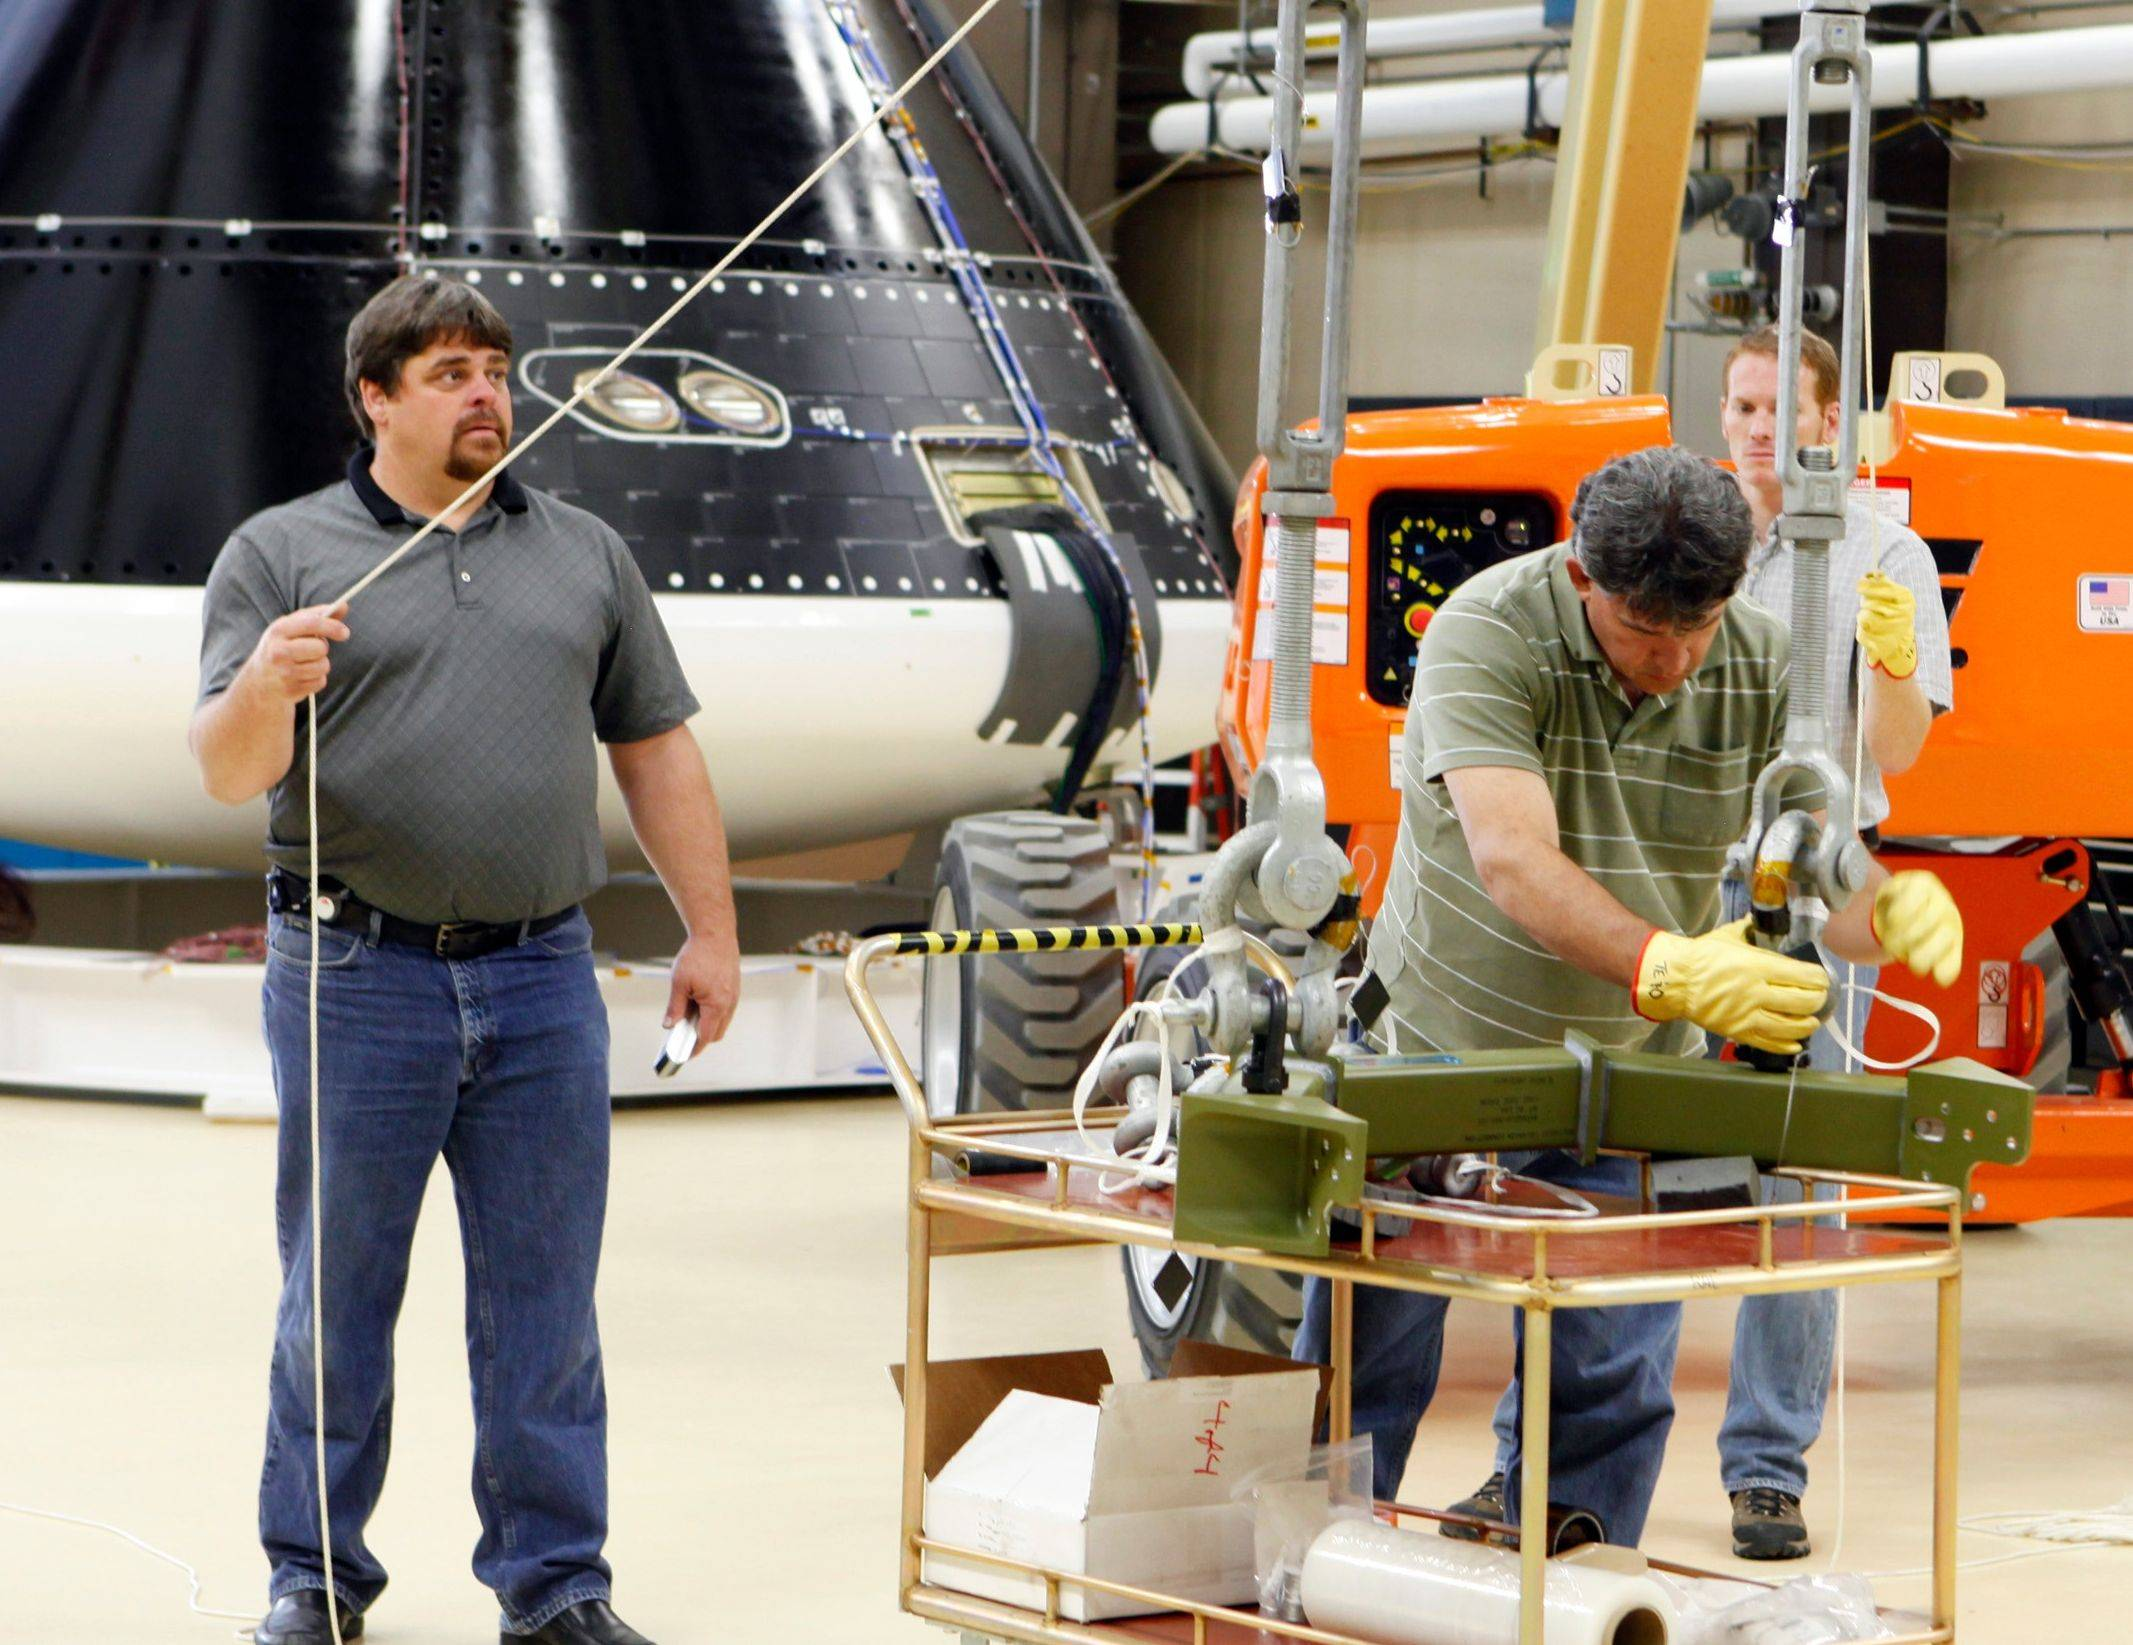 Engineers work on the Orion spacecraft Friday at the Lockheed Martin facility in Denver. Vibration testing on the spacecraft is expected to get underway today.